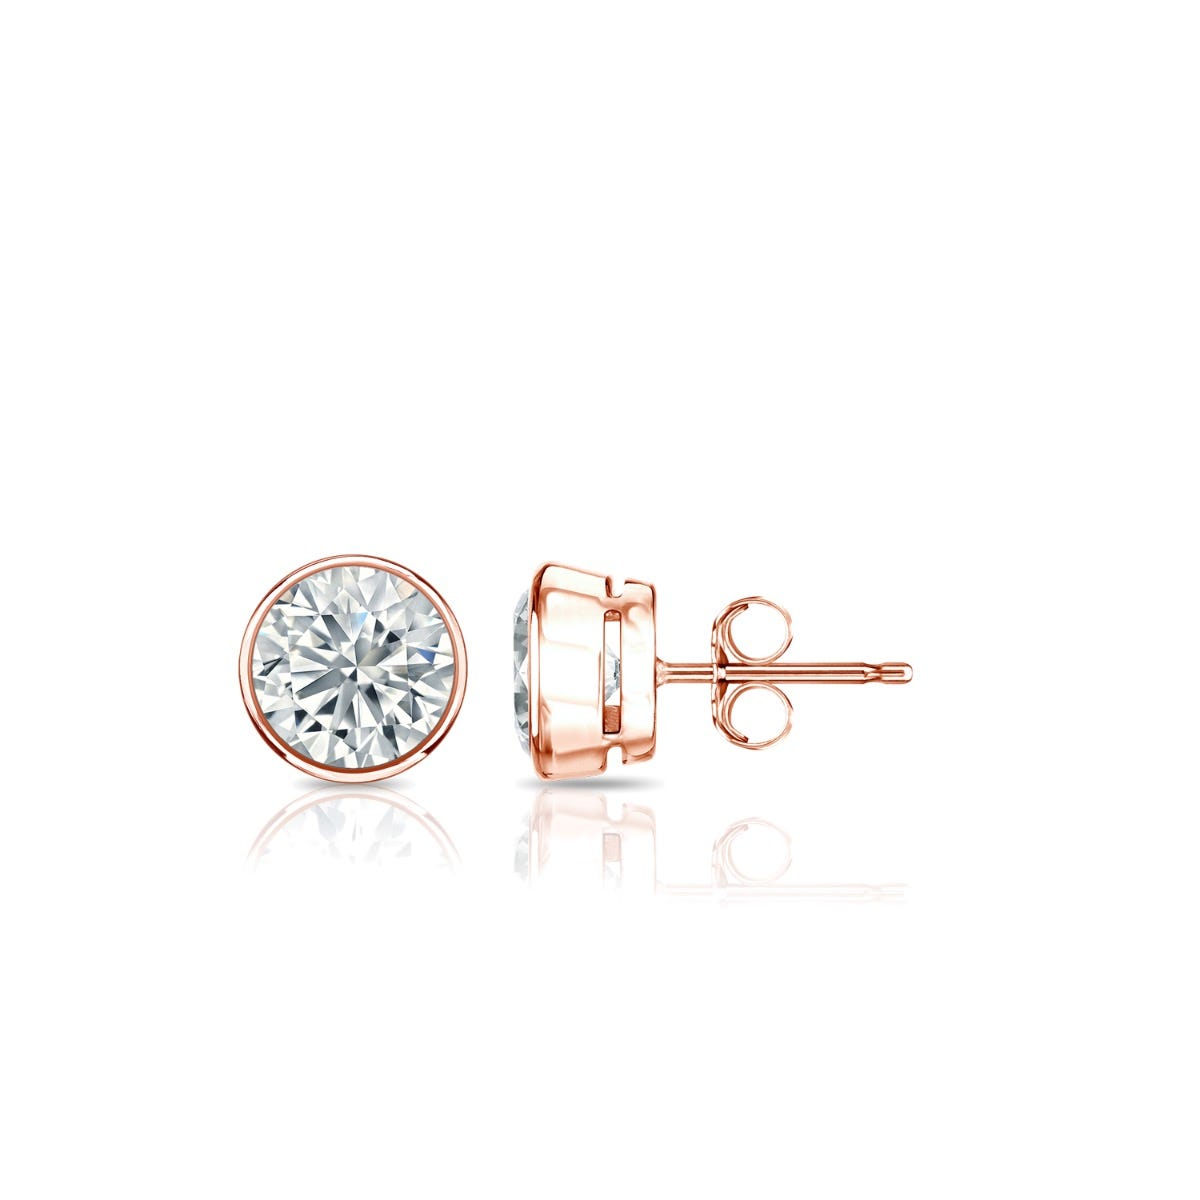 Diamond Round Bezel-Set 1/2ctw. Solitaire Stud (IJ-I2) Earrings in 14K Rose Gold